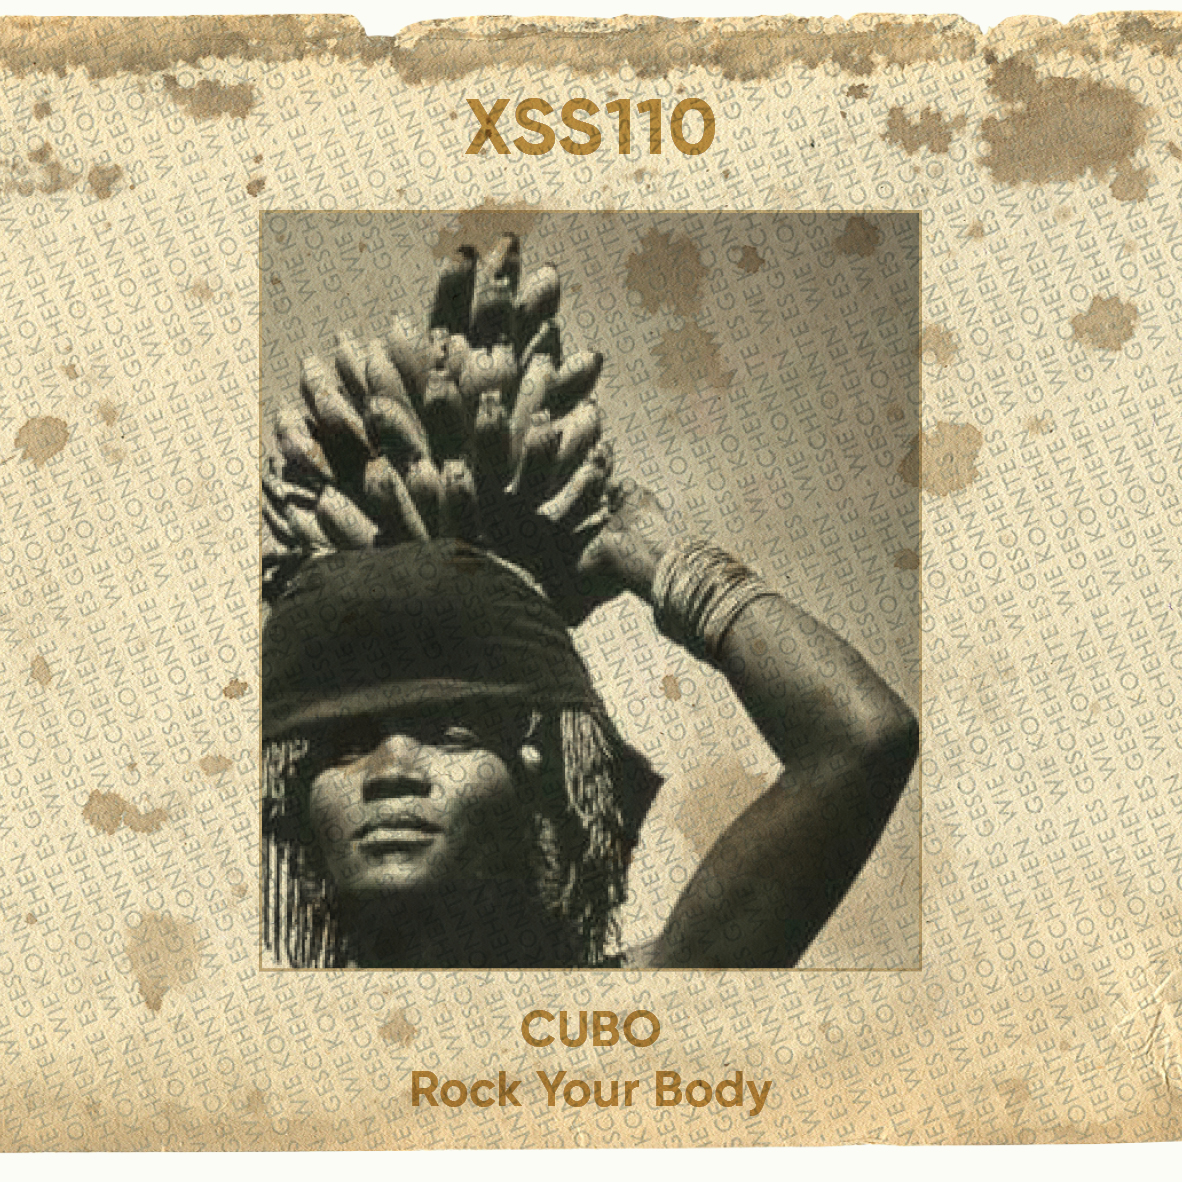 XSS110 | Cubo | Rock Your Body